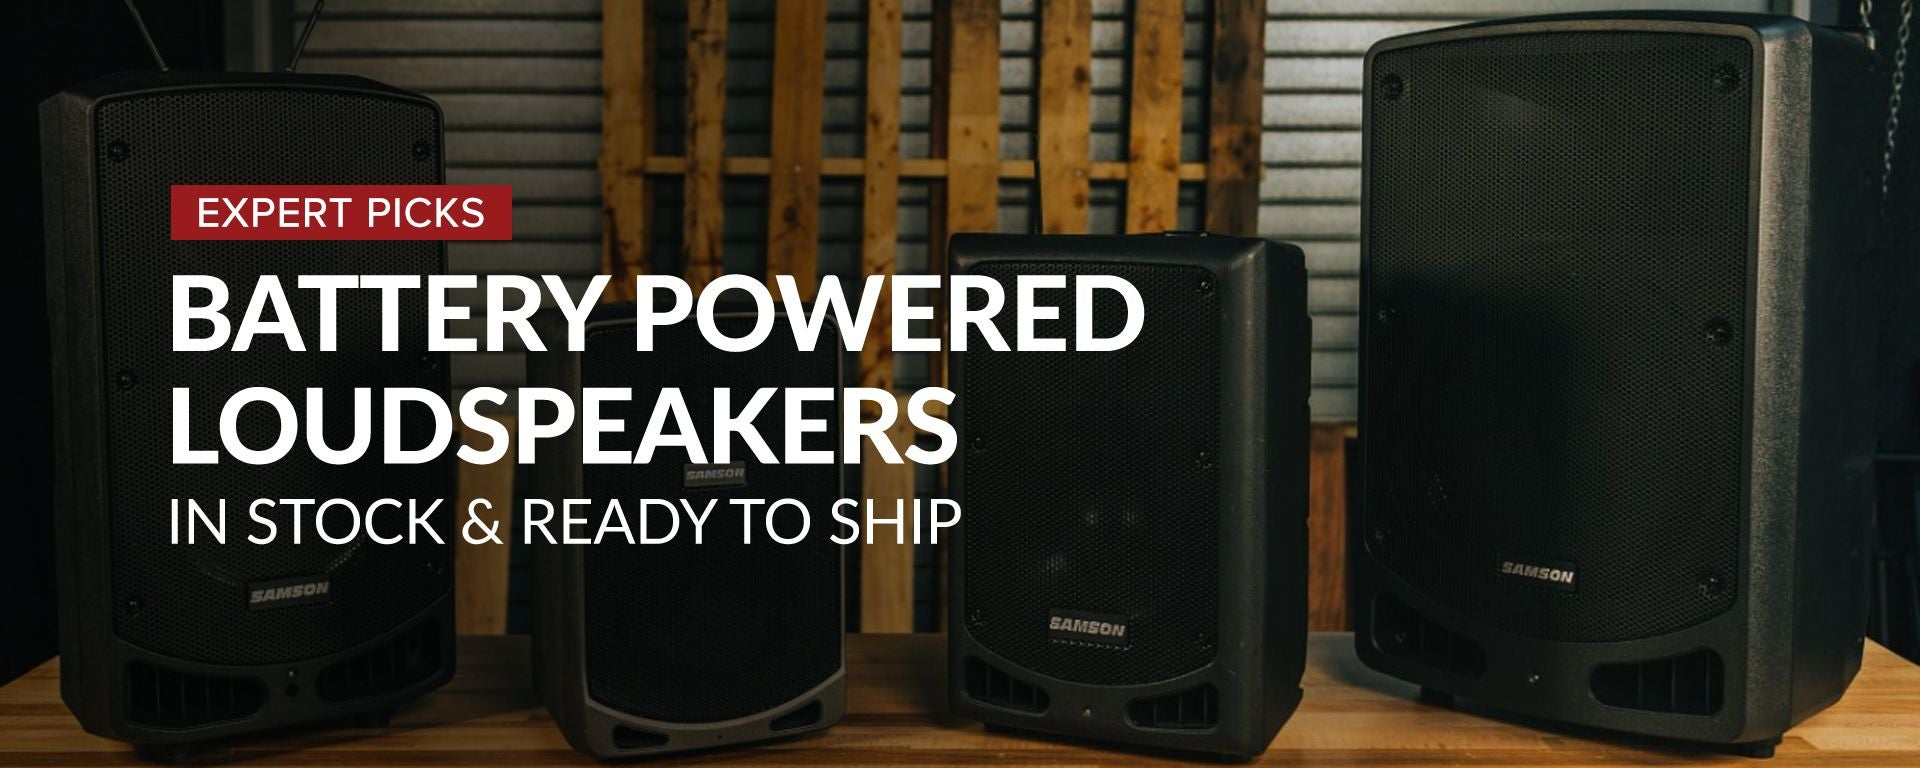 Shop Battery Powered Speakers at Sam Ash